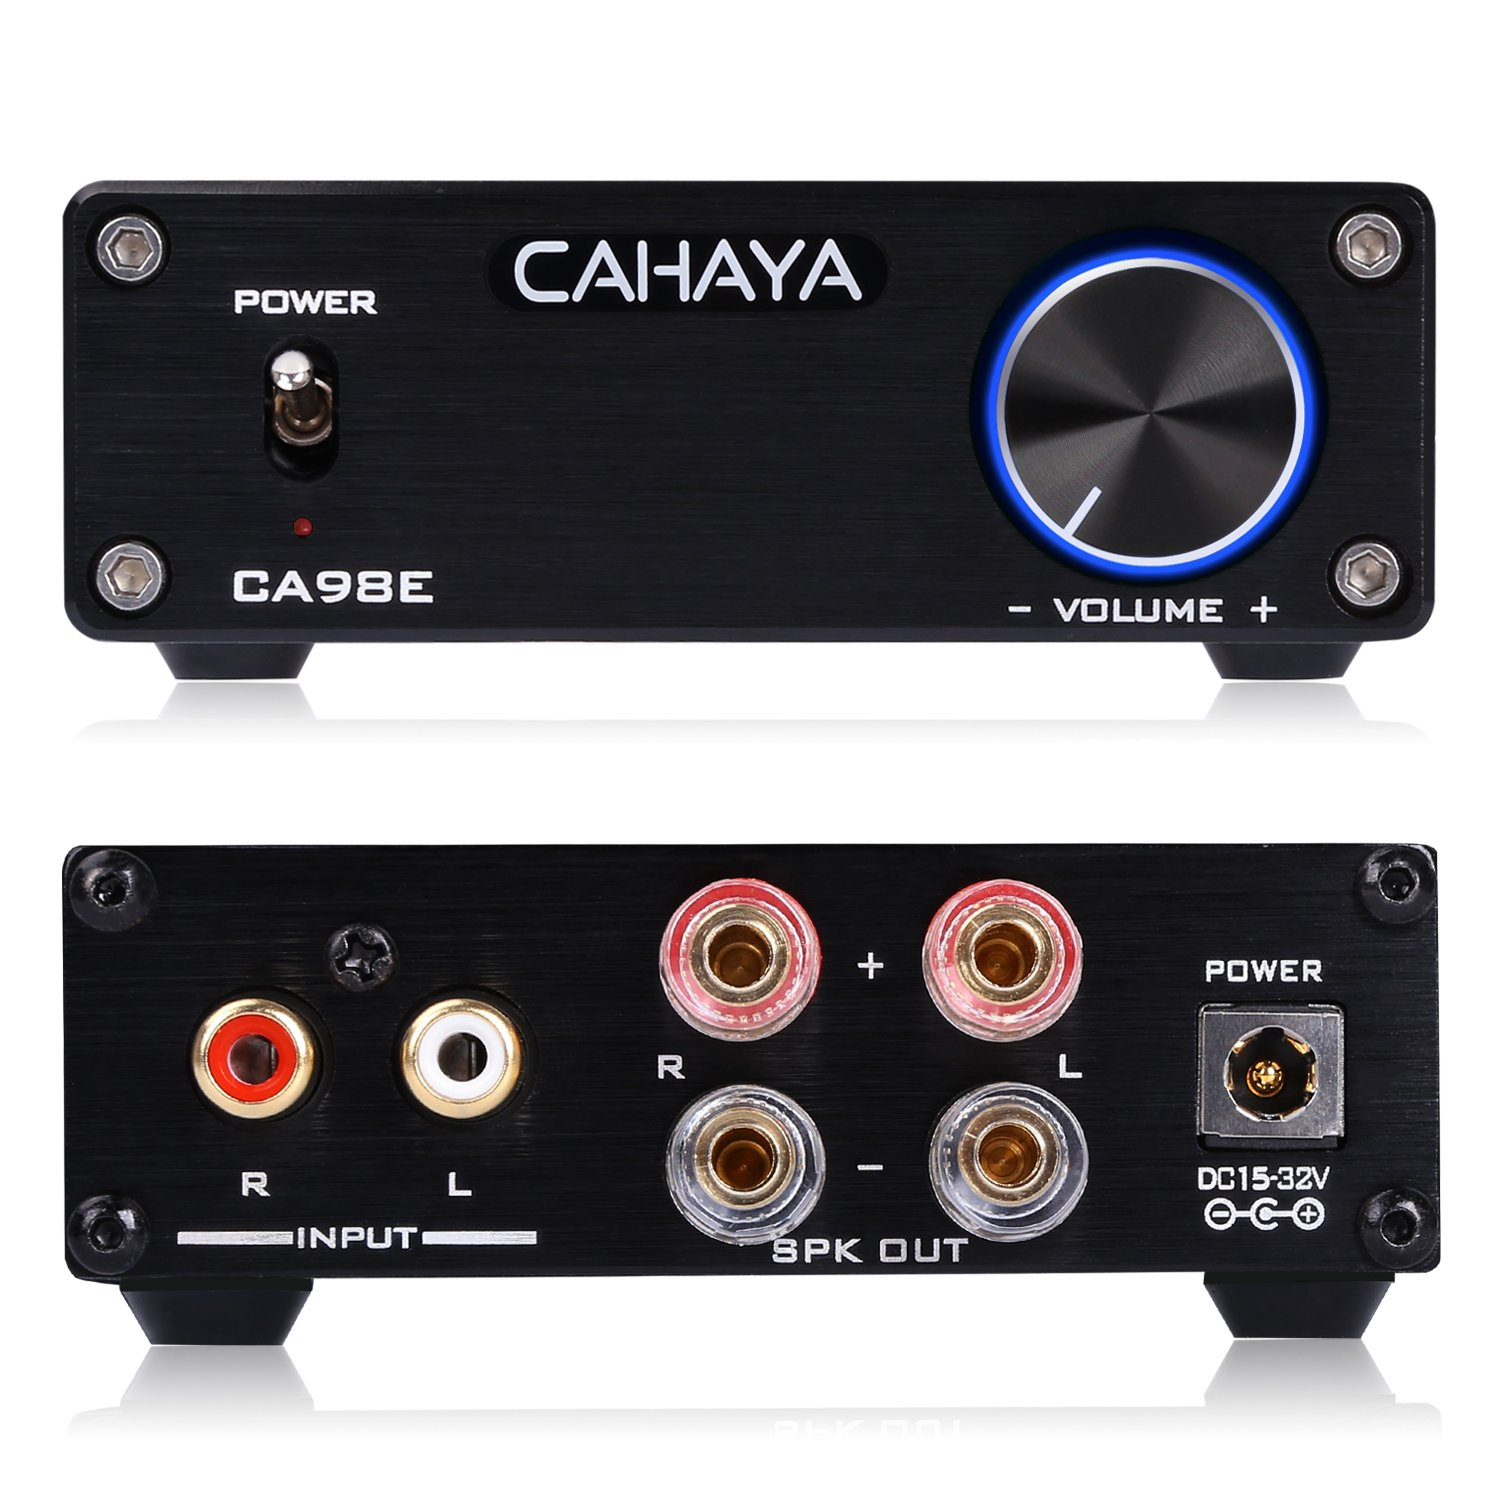 CAHAYA Sound Mixer Digital Audio Sound Echo Mixer with Dual Channel of Microphone for Smart Phone PC and Amplifier CA-CY0046